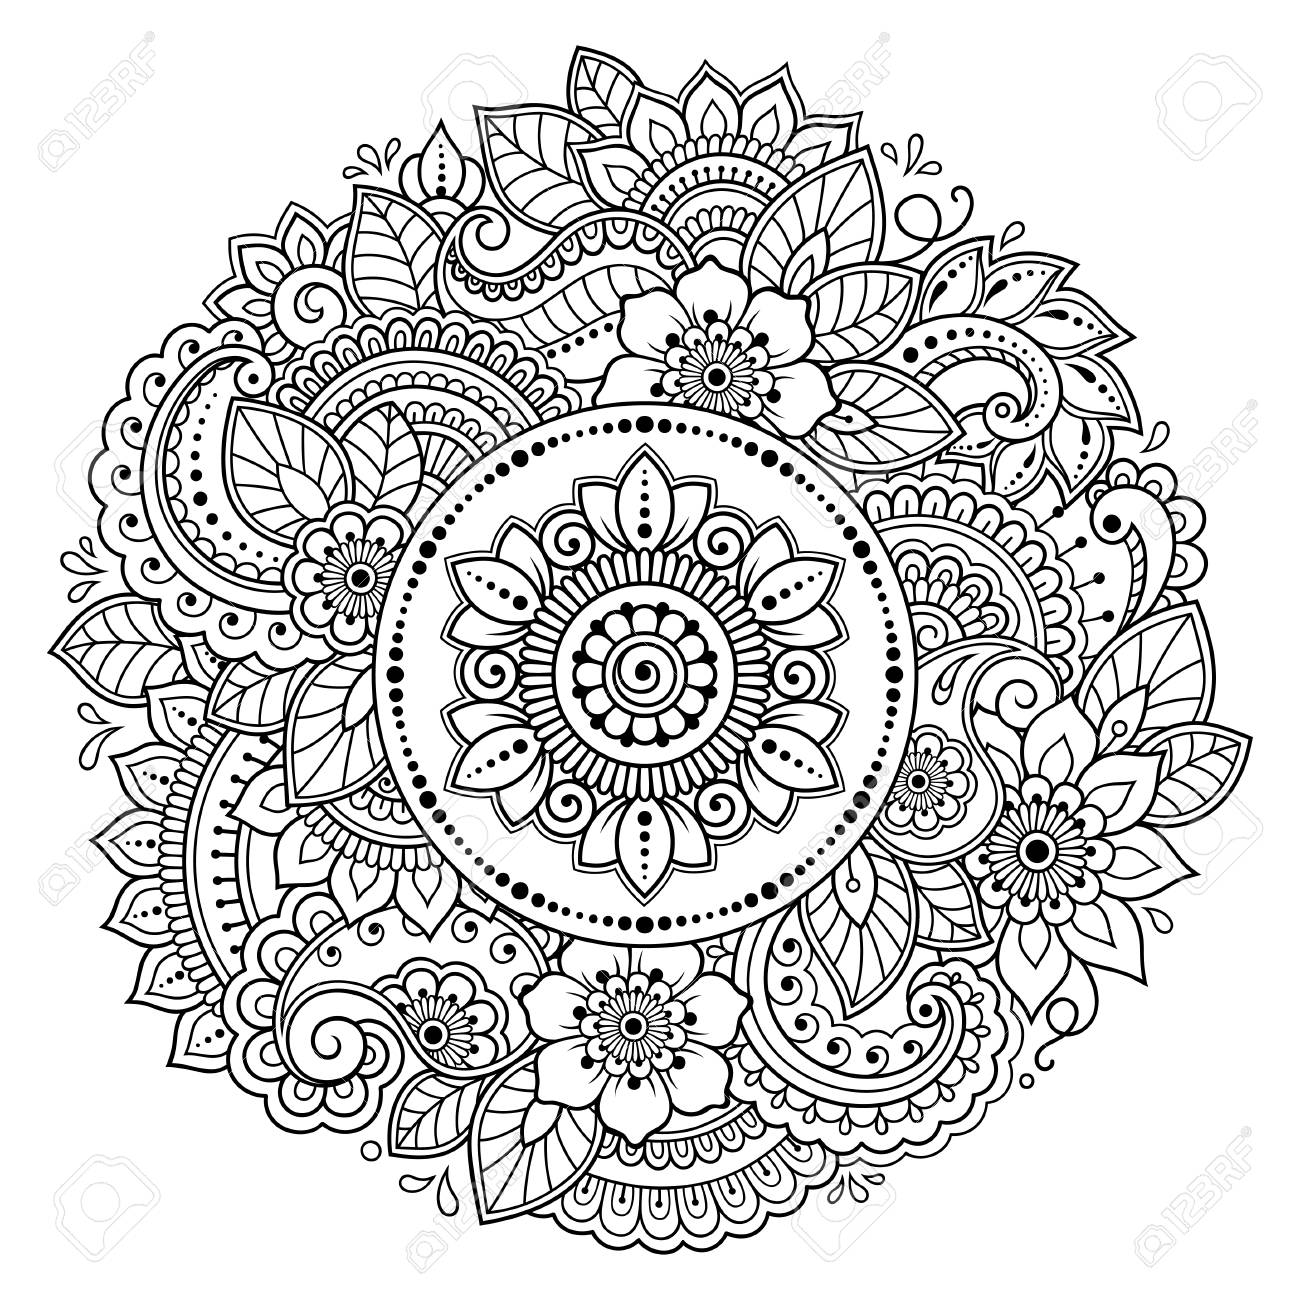 circular pattern in form of mandala with lotus flower for henna mehndi tattoo decoration decorative